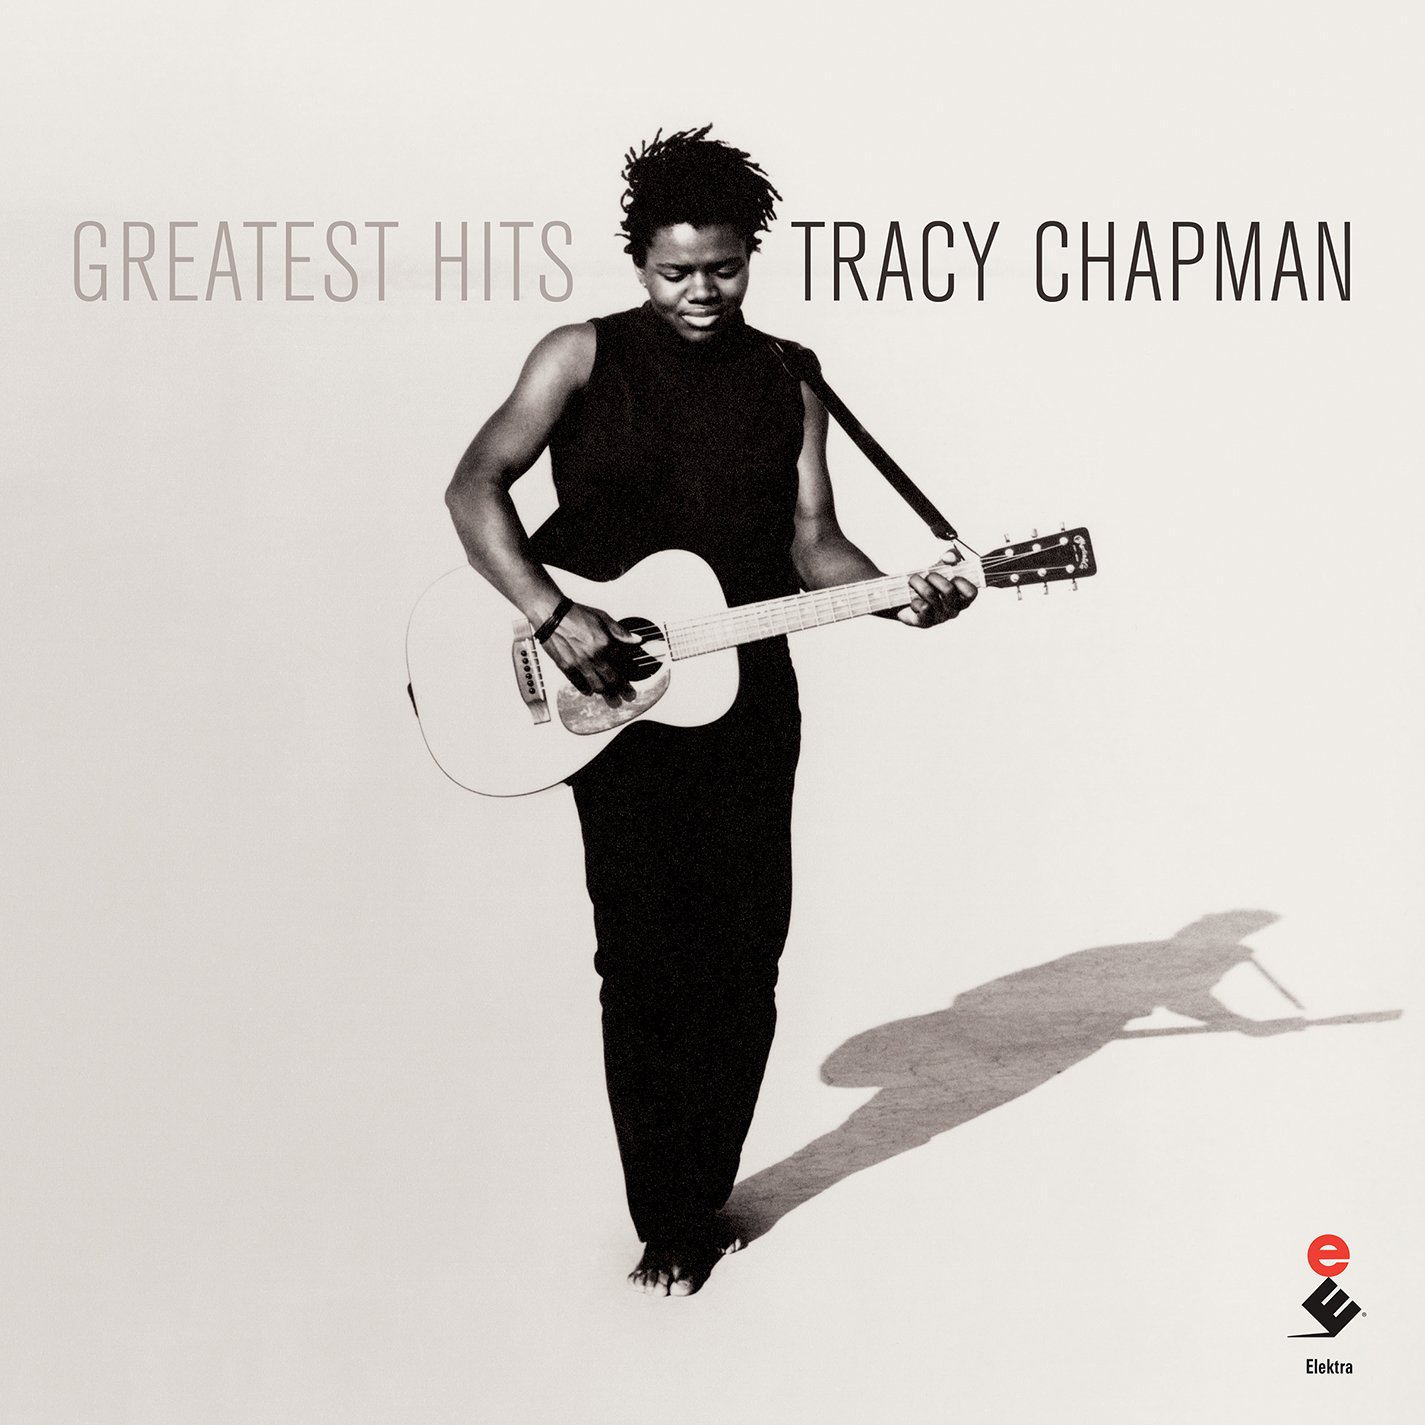 Tracy Chapman - Greatest Hits by Elektra (Label)